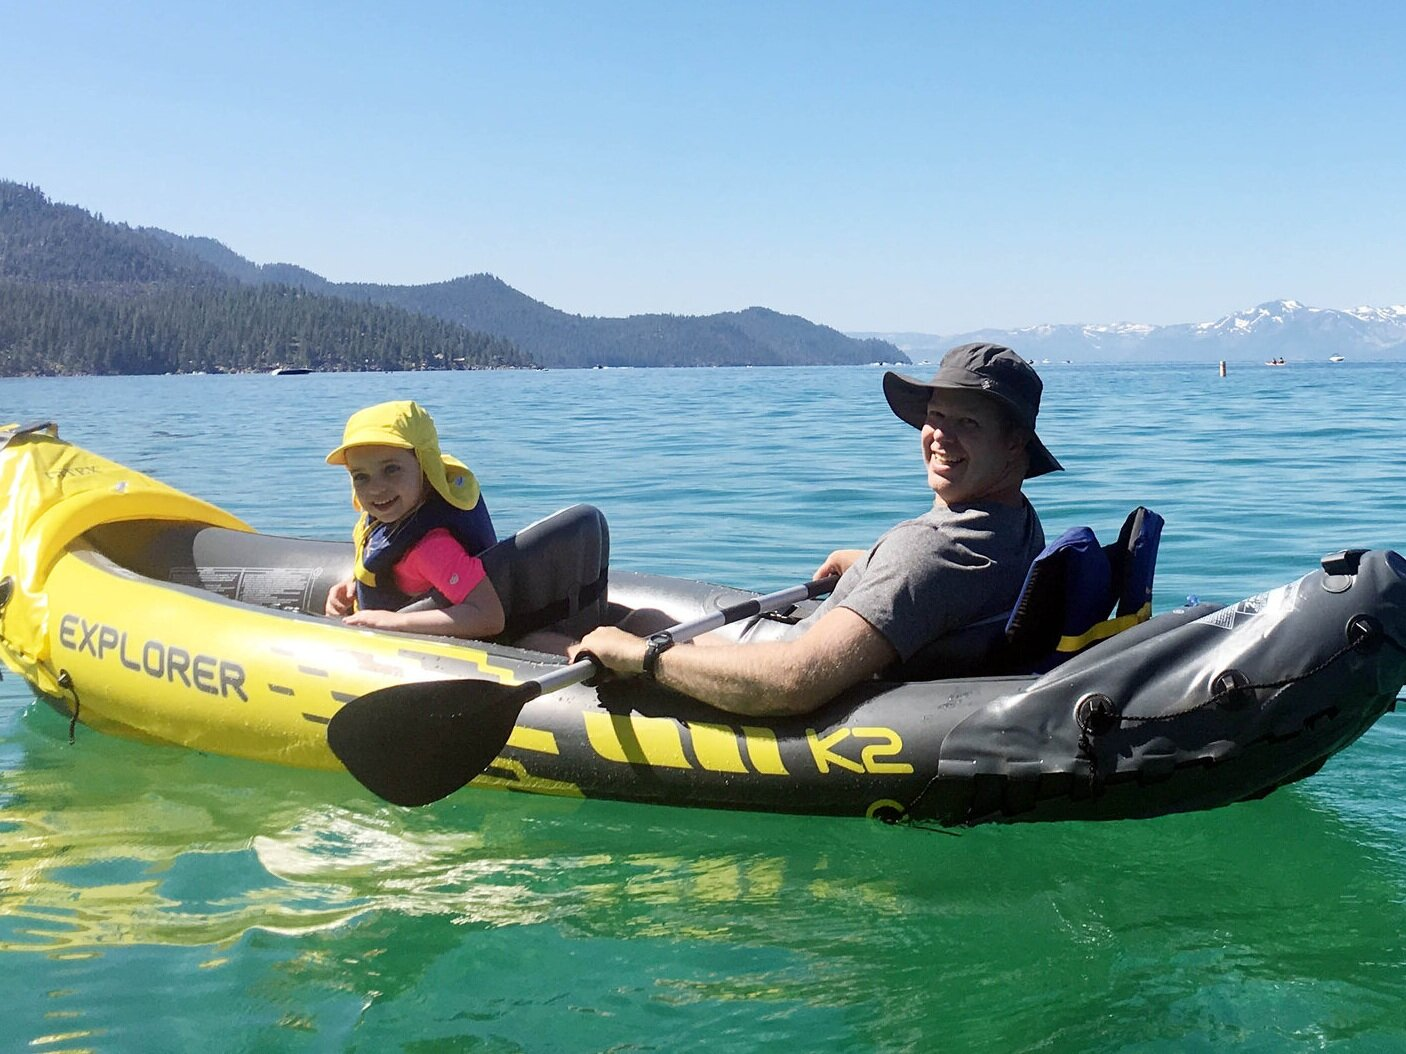 Mirren and Kevin heading out from Sand Harbor on the Nevada side of Lake Tahoe.